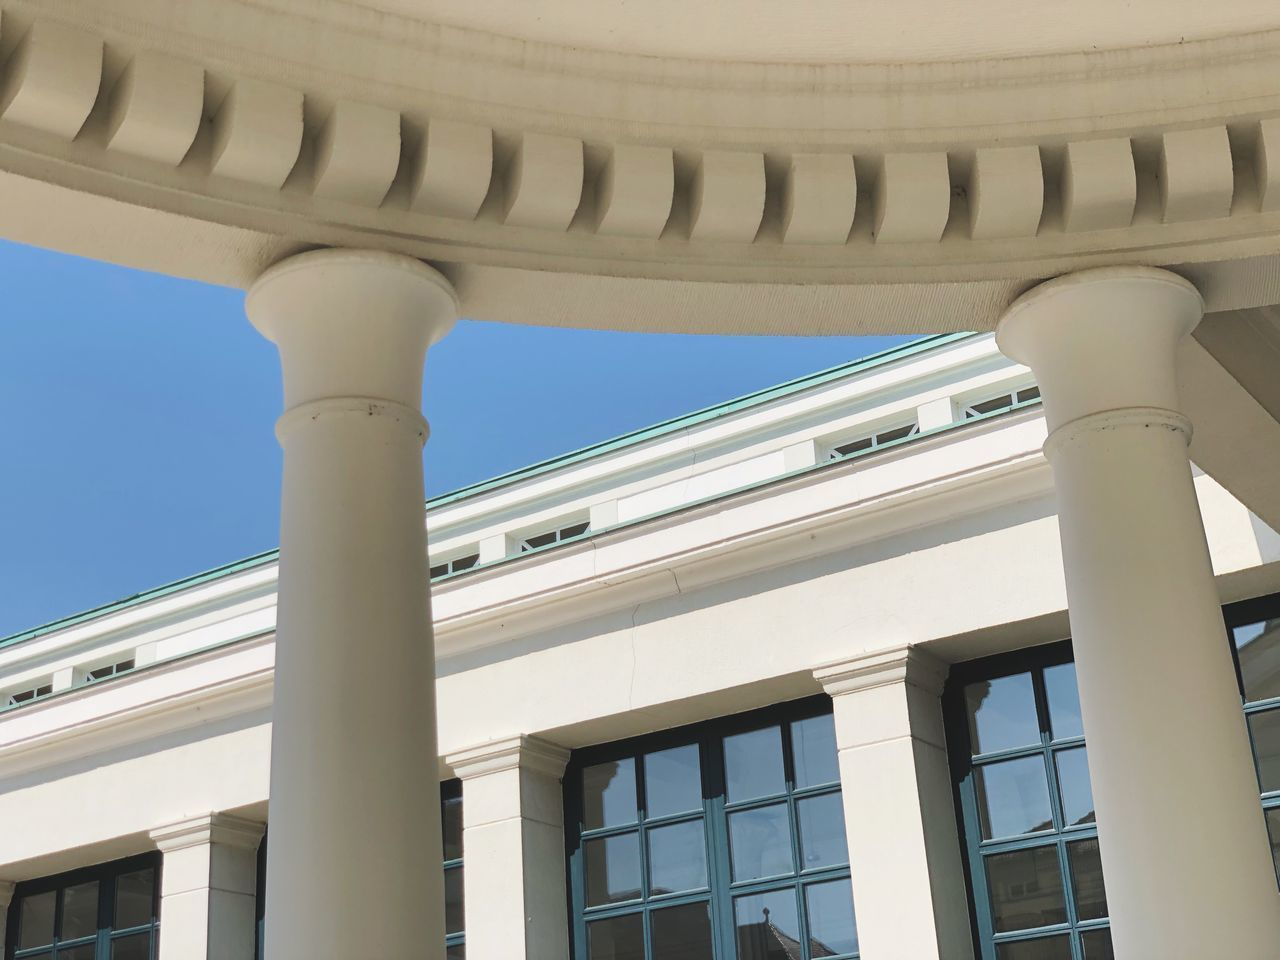 architecture, built structure, low angle view, building exterior, architectural column, no people, building, day, sunlight, sky, travel, clear sky, outdoors, nature, travel destinations, tourism, window, blue, pattern, architectural feature, ceiling, neo-classical, colonnade